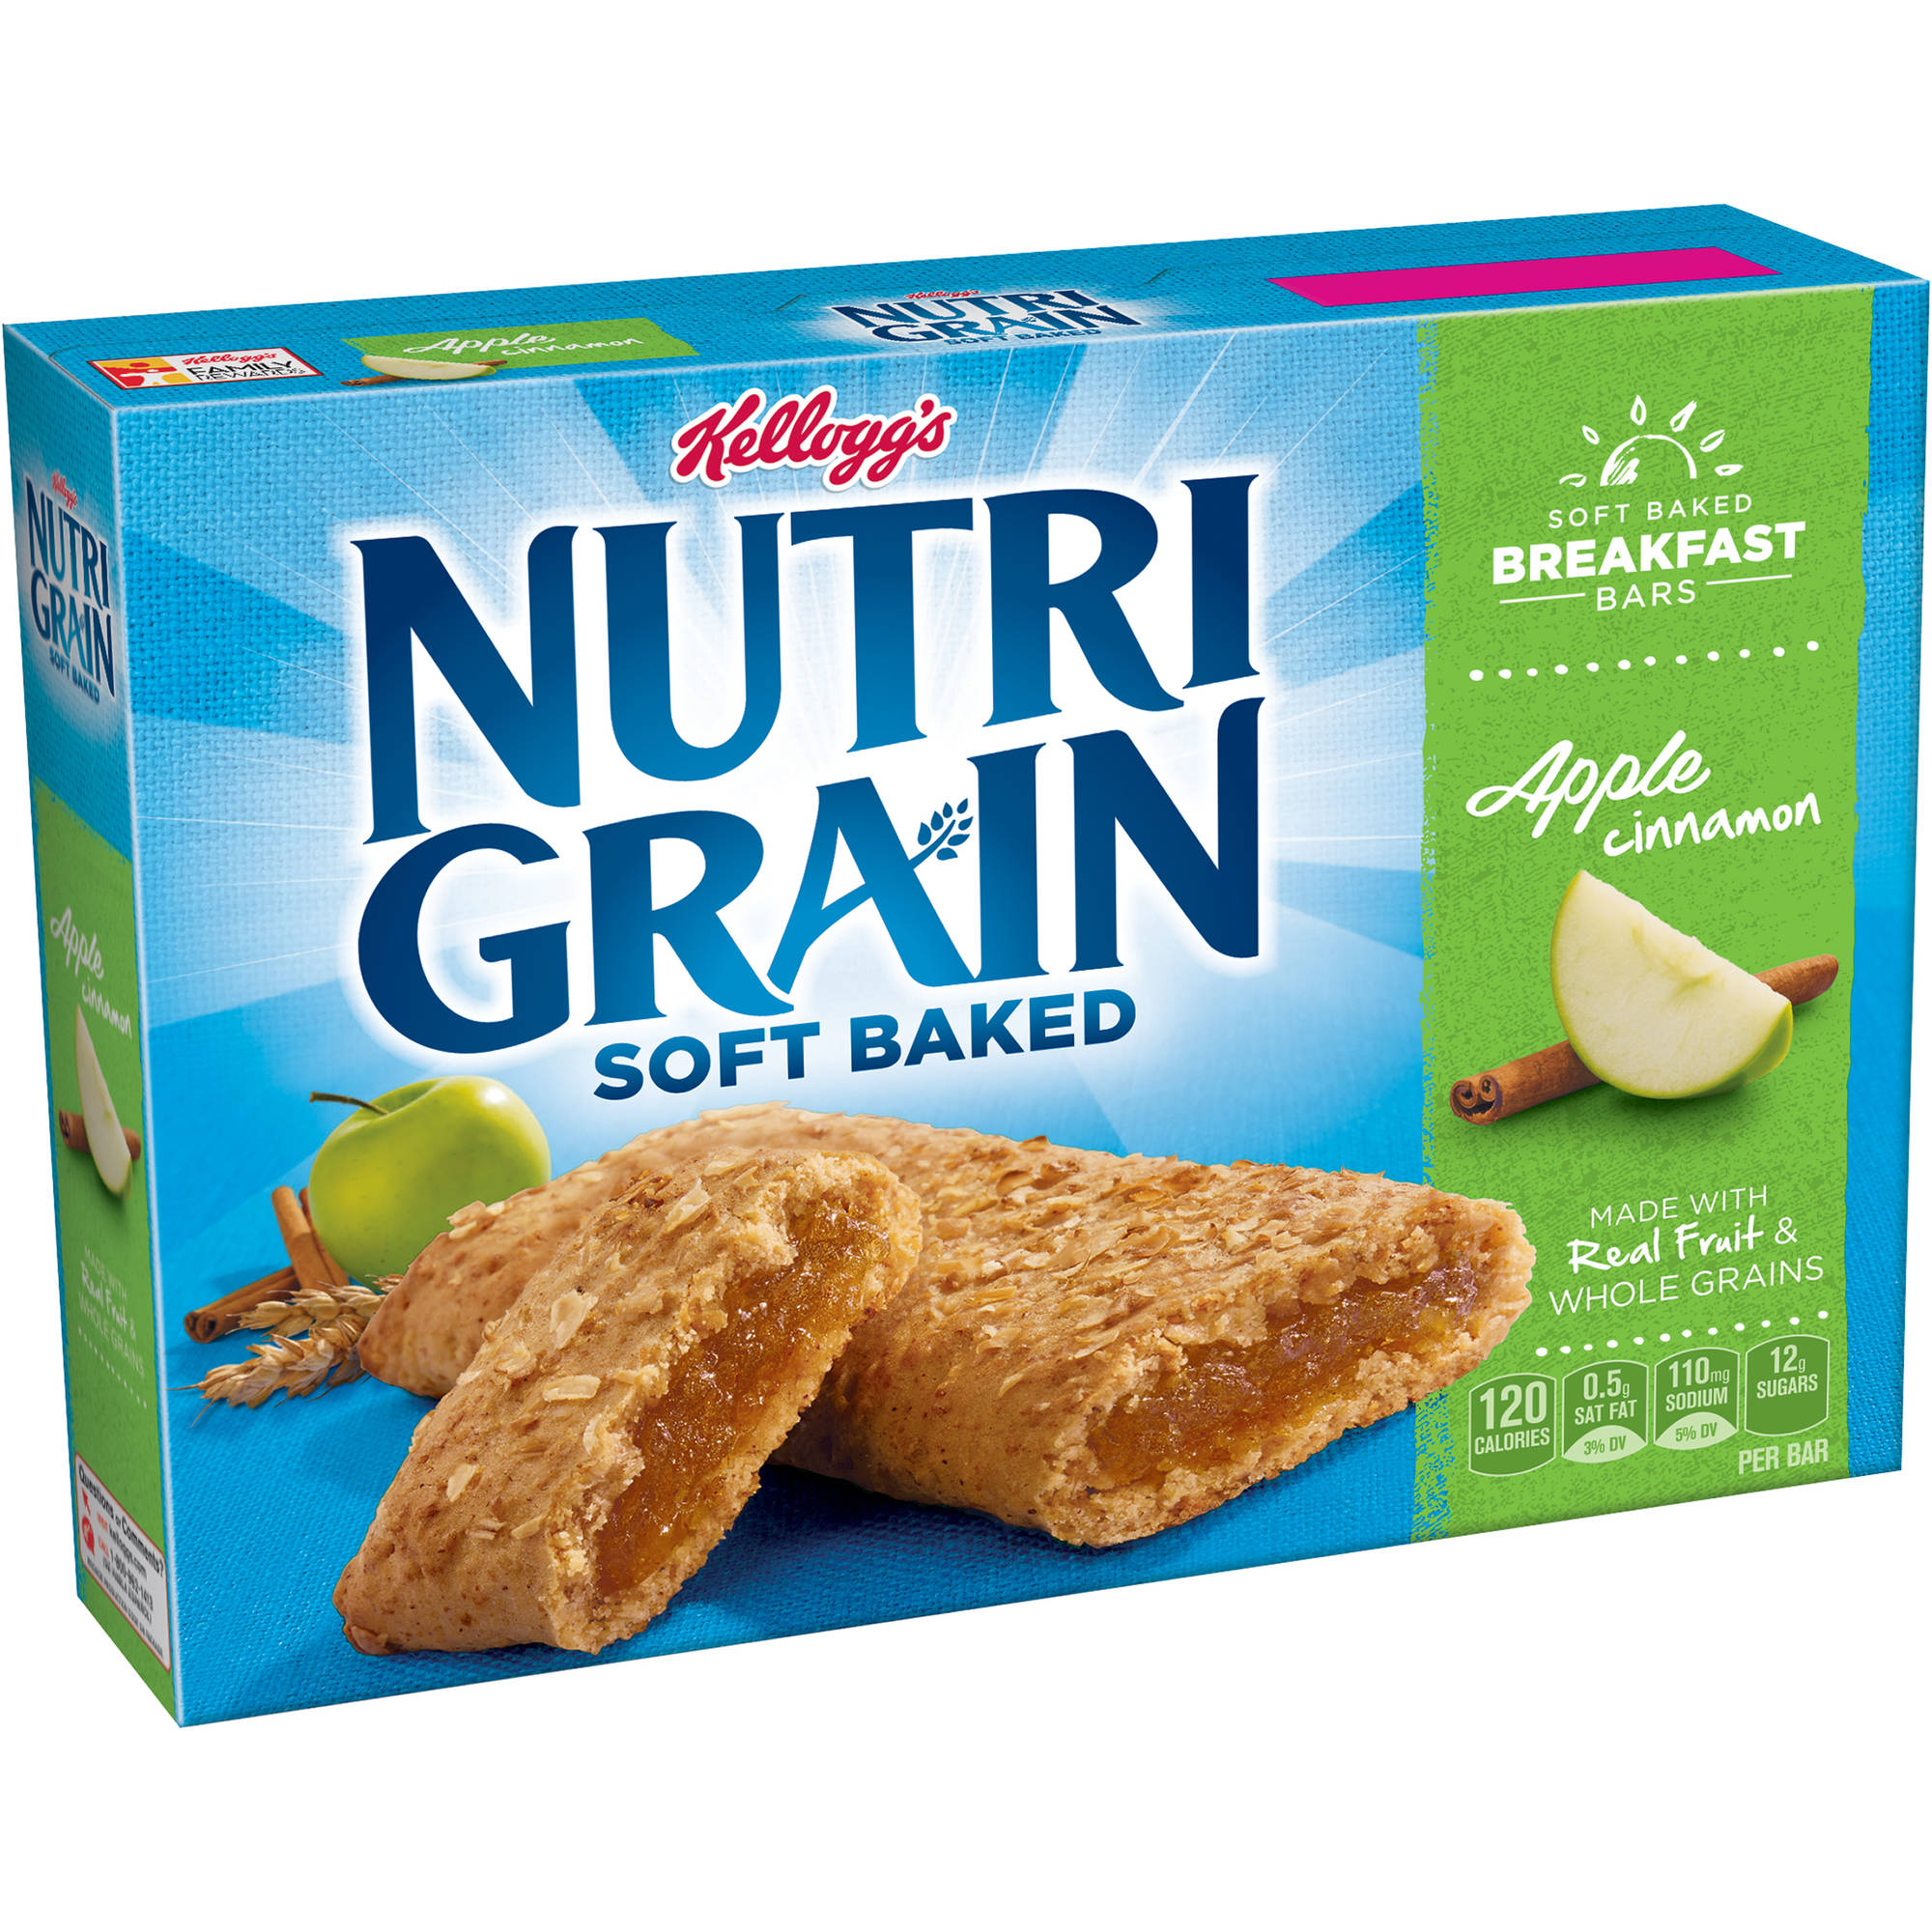 Kellogg's Nutri-Grain Soft Baked Apple Cinnamon Breakfast Bars, 1.3 oz, 8 count